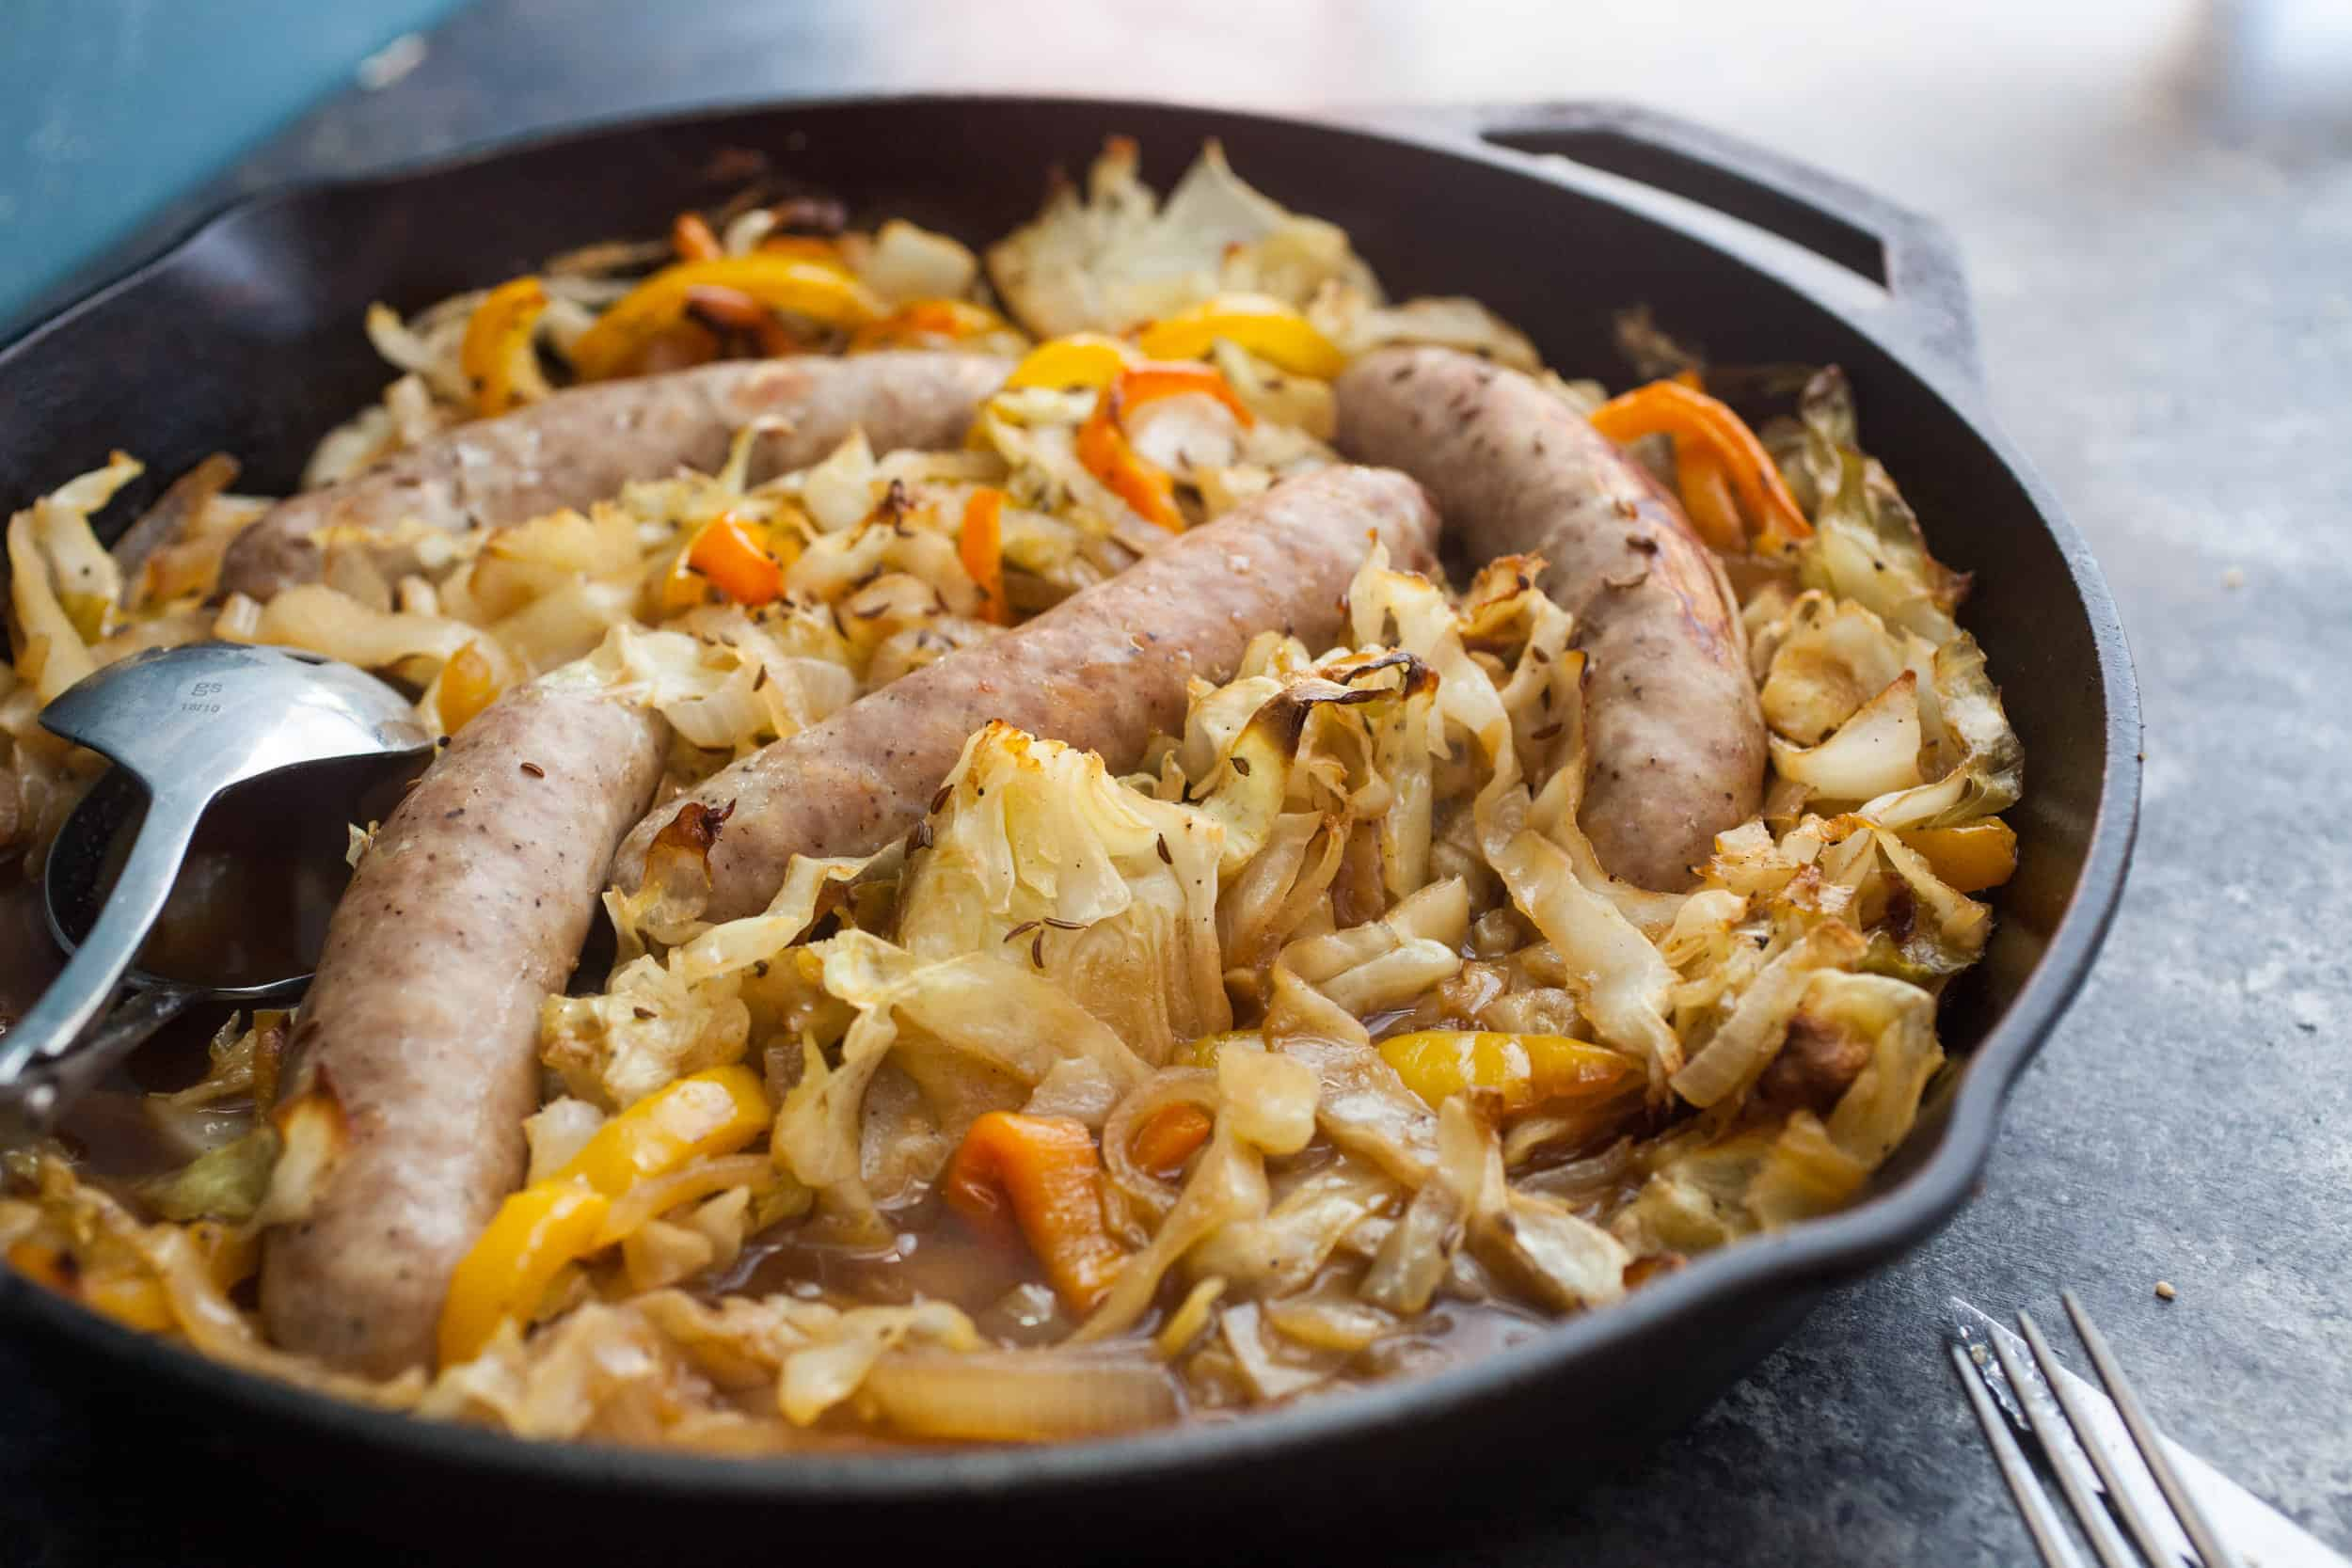 Apple Cider Braised Bratwurst